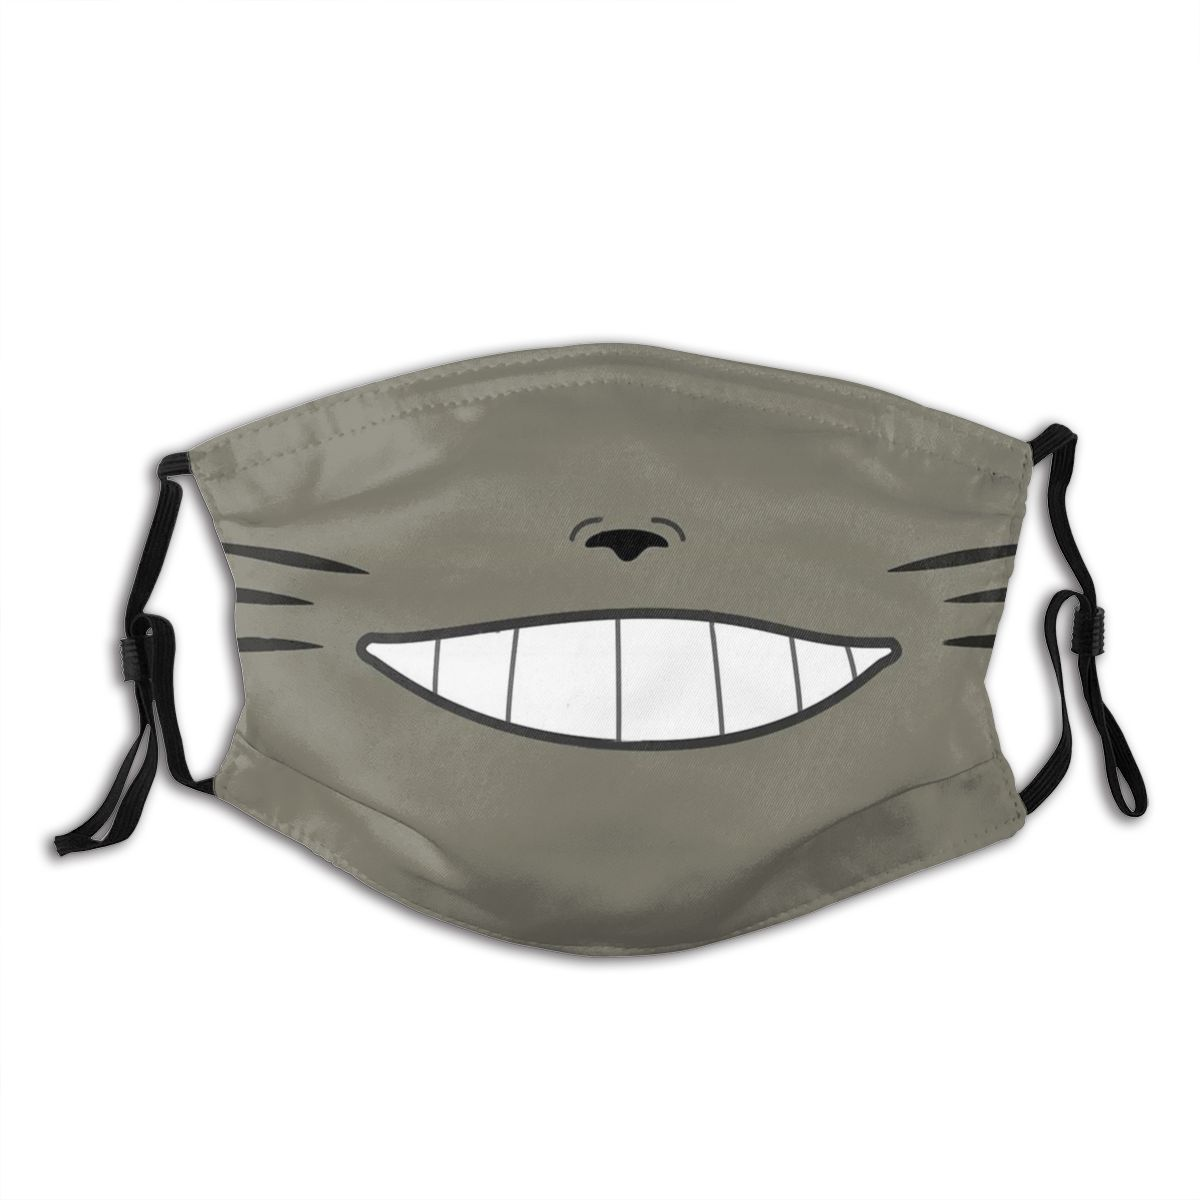 Totoro Smiling Non-Disposable Mouth Face Mask Anti Bacterial Dustproof Mask With Filters Protection Mask Respirator Mouth Muffle